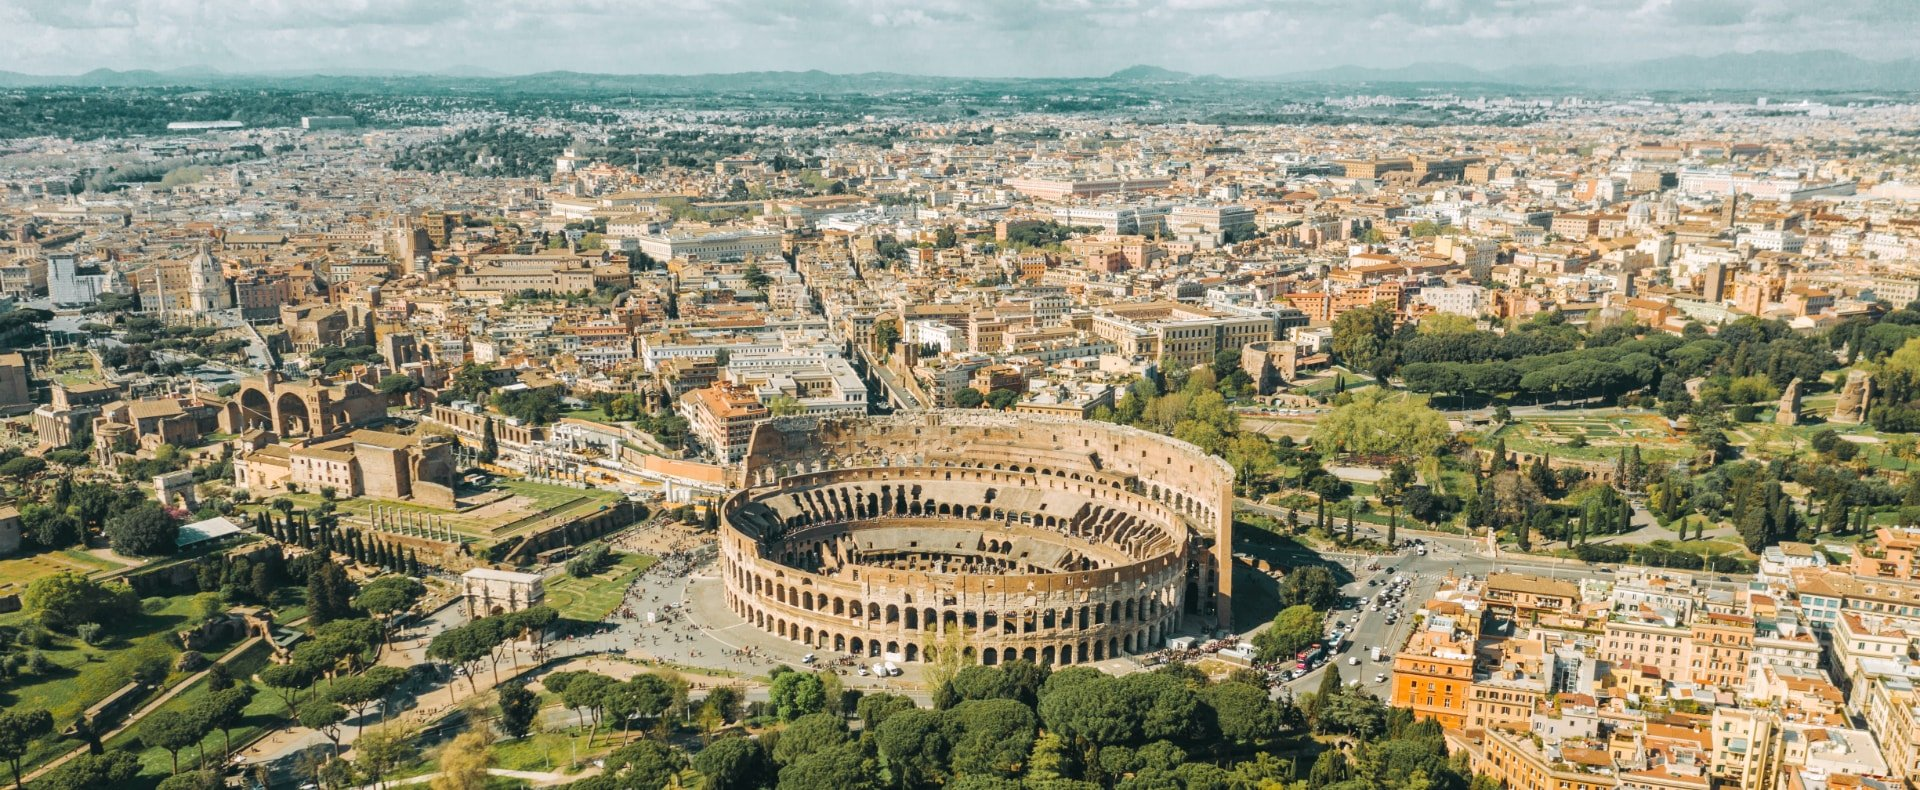 Visit the Colosseum, Rome